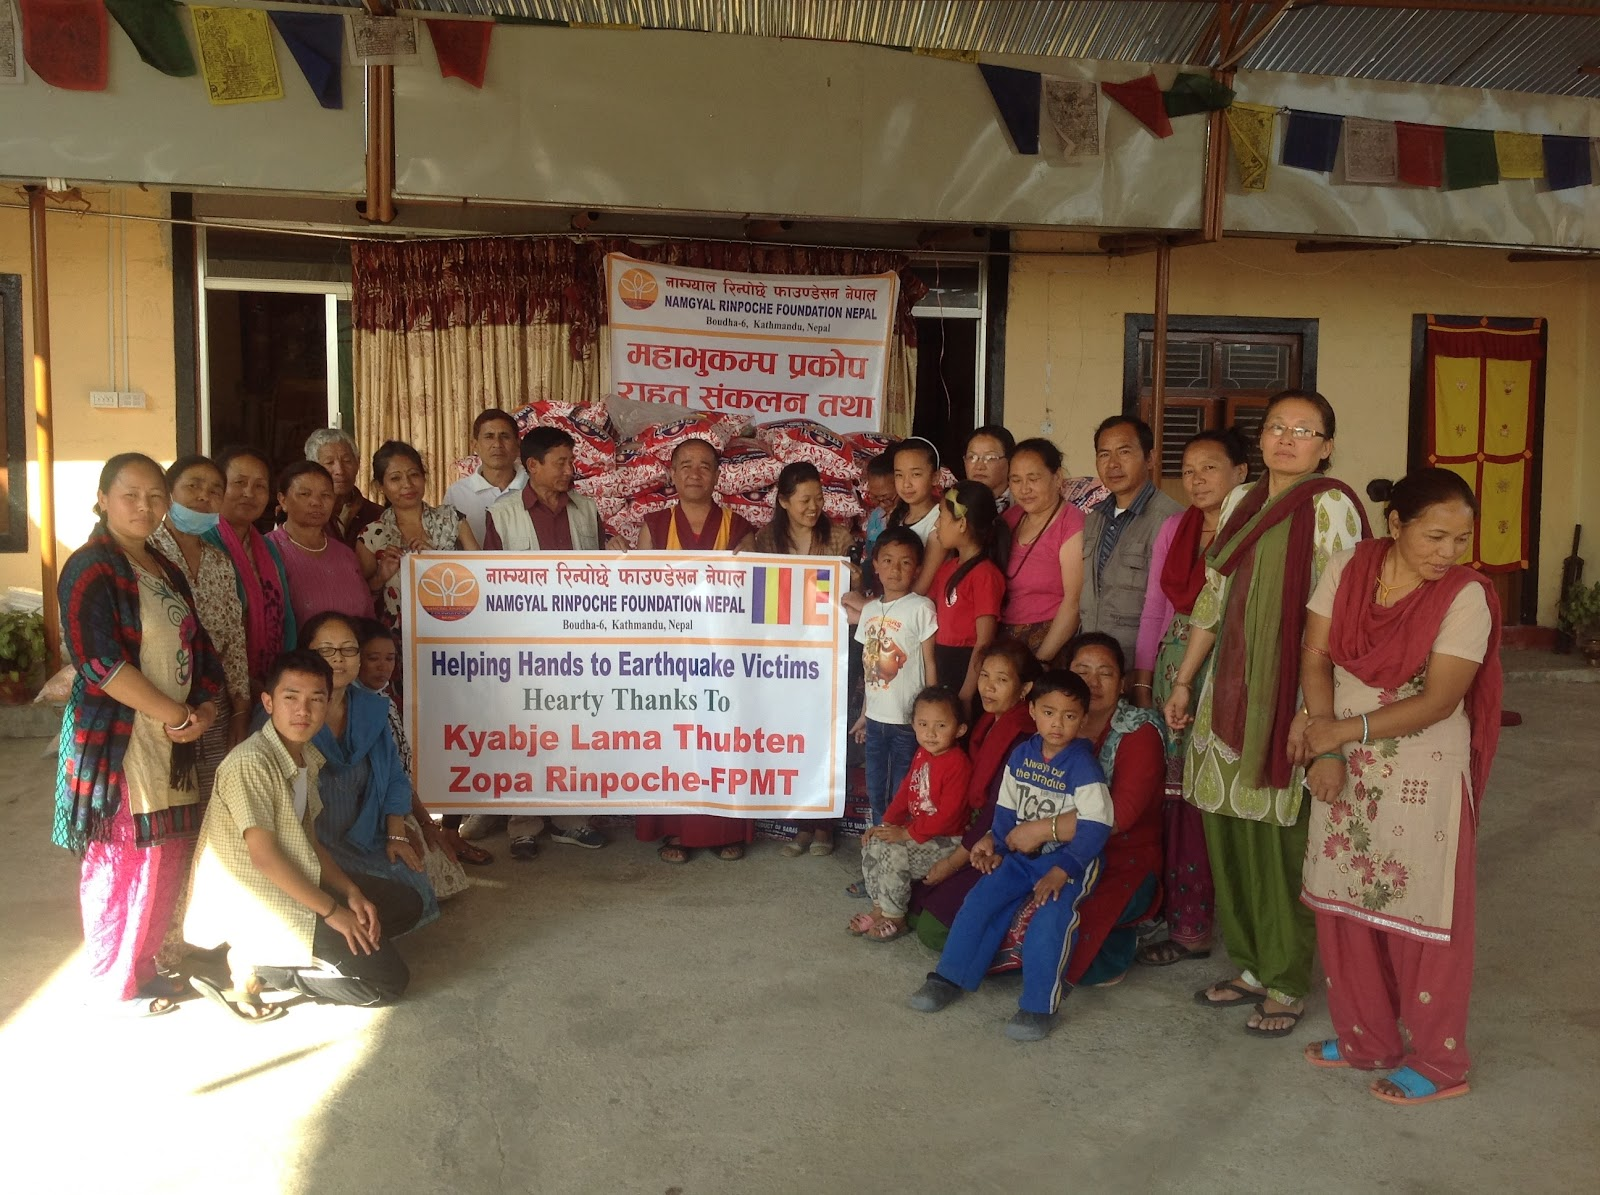 Namgyal Rinpoche Foundation received funding from the Nepal Earthquake Support Fund to distribute aid.